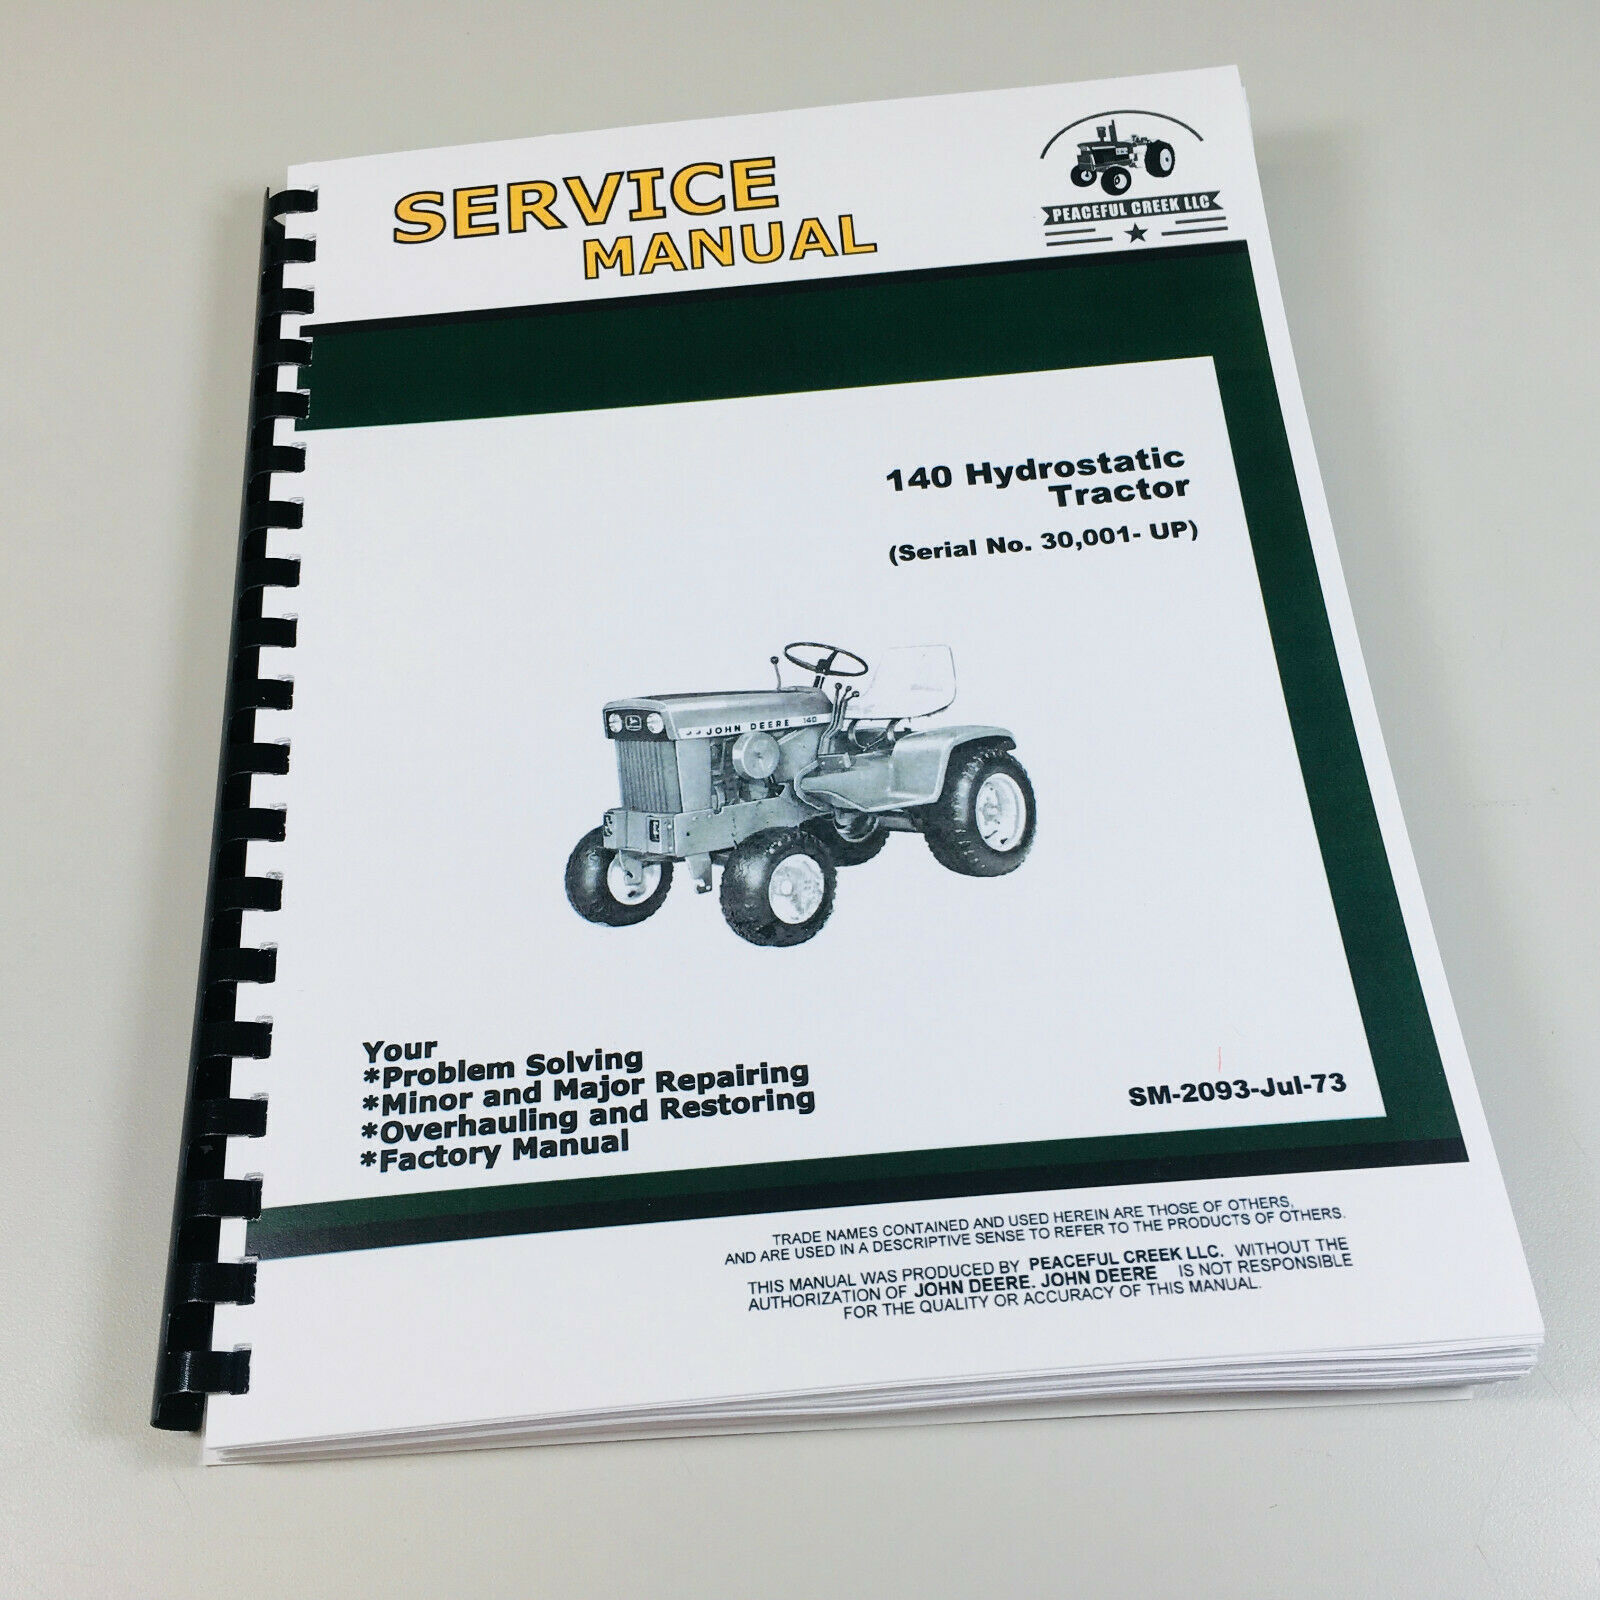 Details About Service Manual For John Deere 140 Lawn Mower Garden Tractor Repair Technical